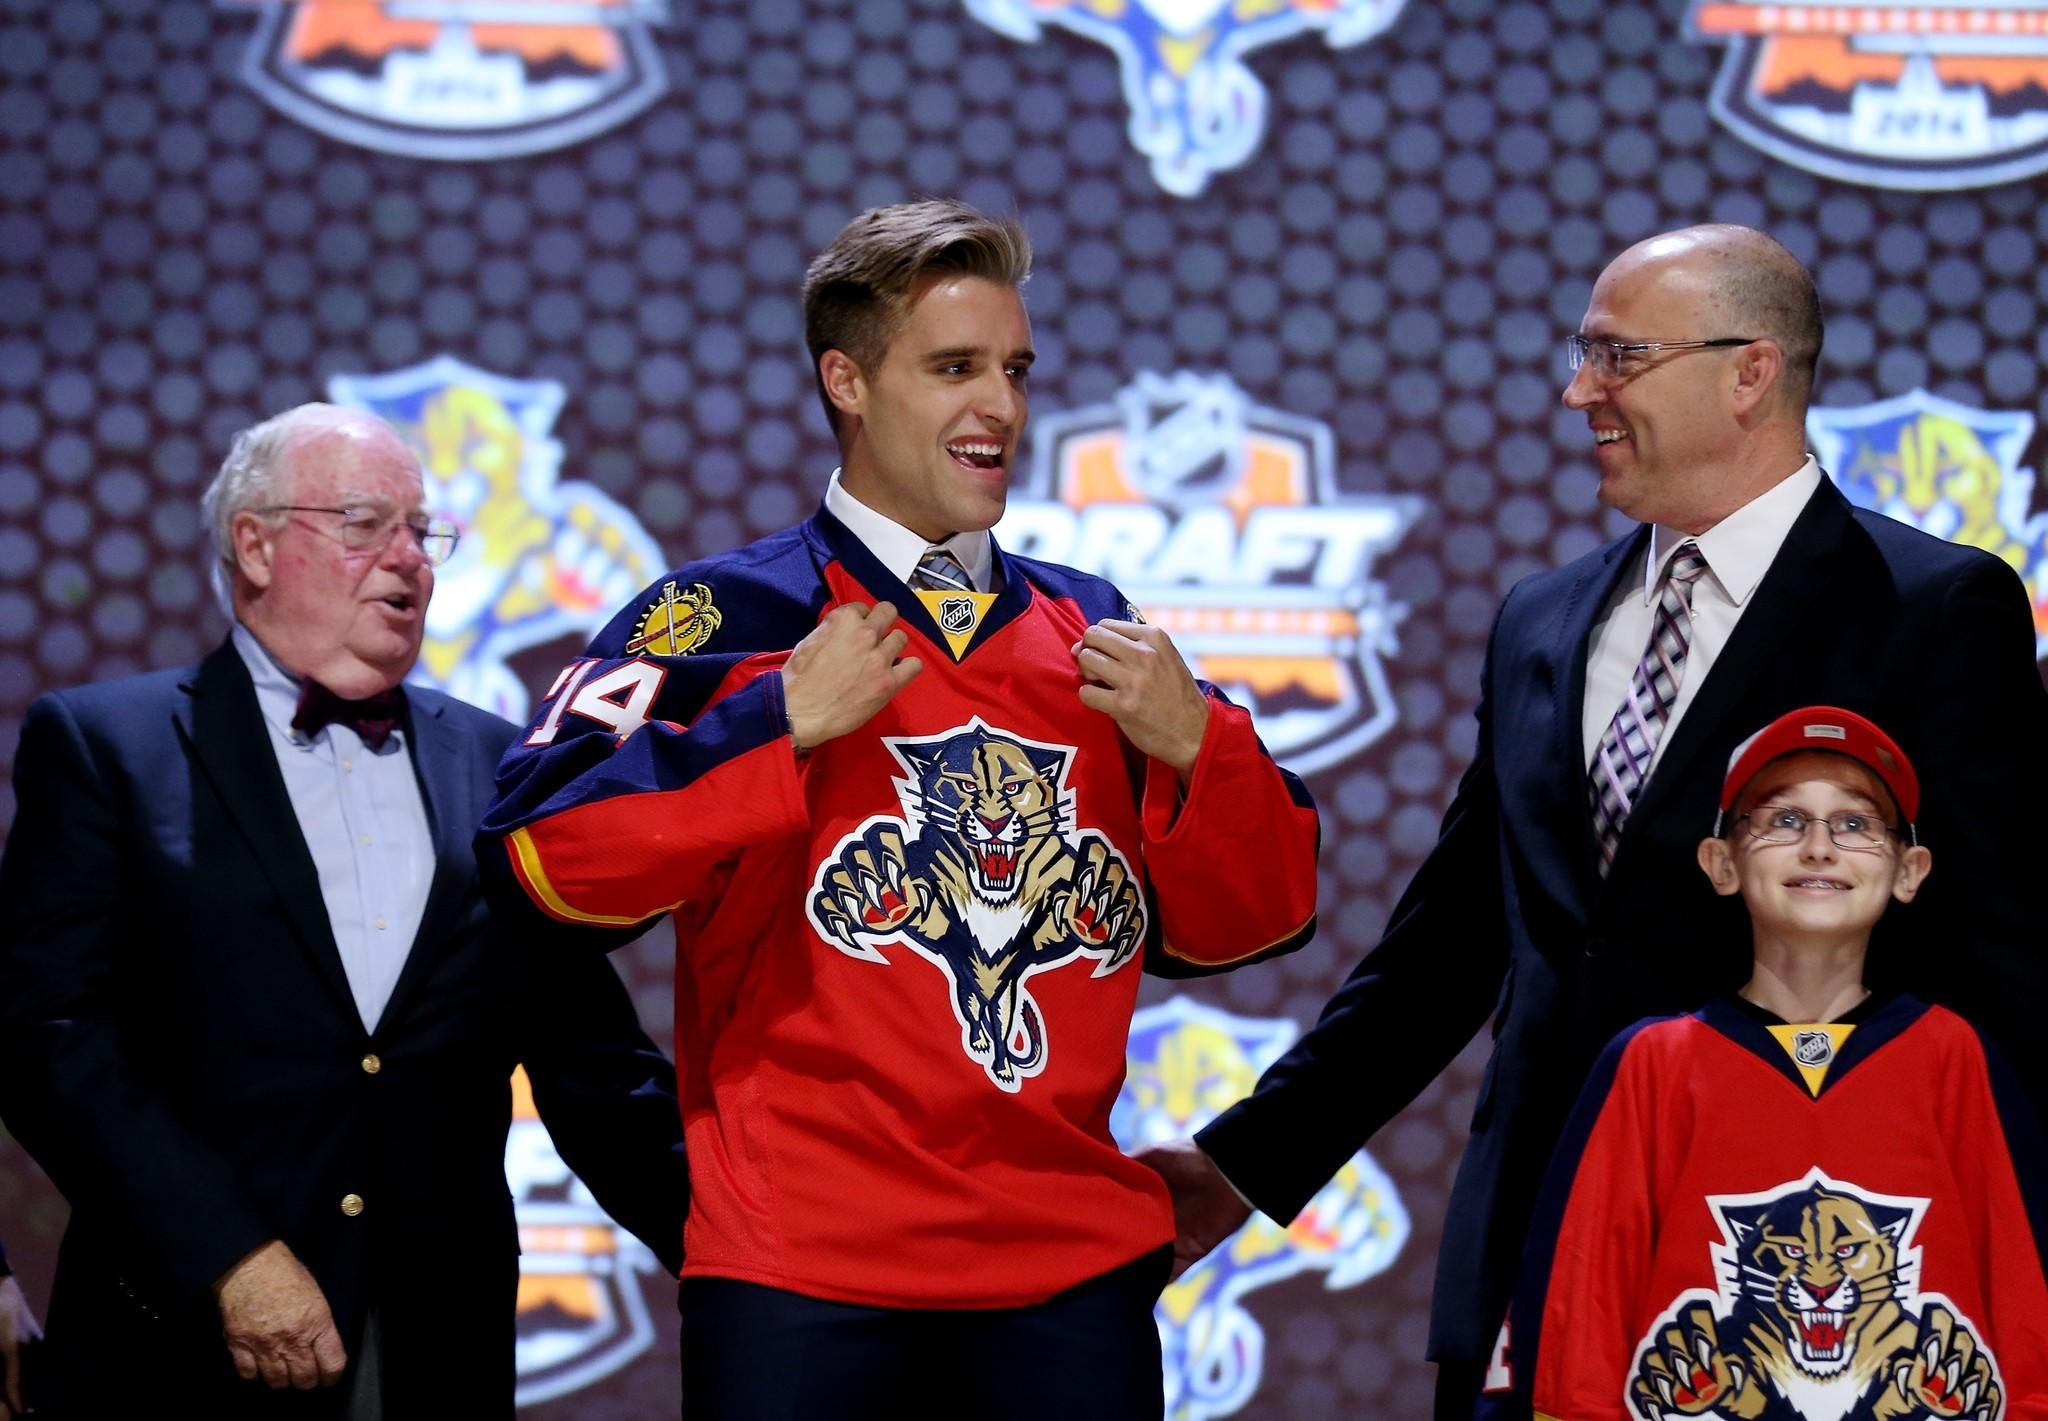 Aaron Ekblad is selected first overall by the Florida Panthers in the first round of the 2014 NHL Draft.